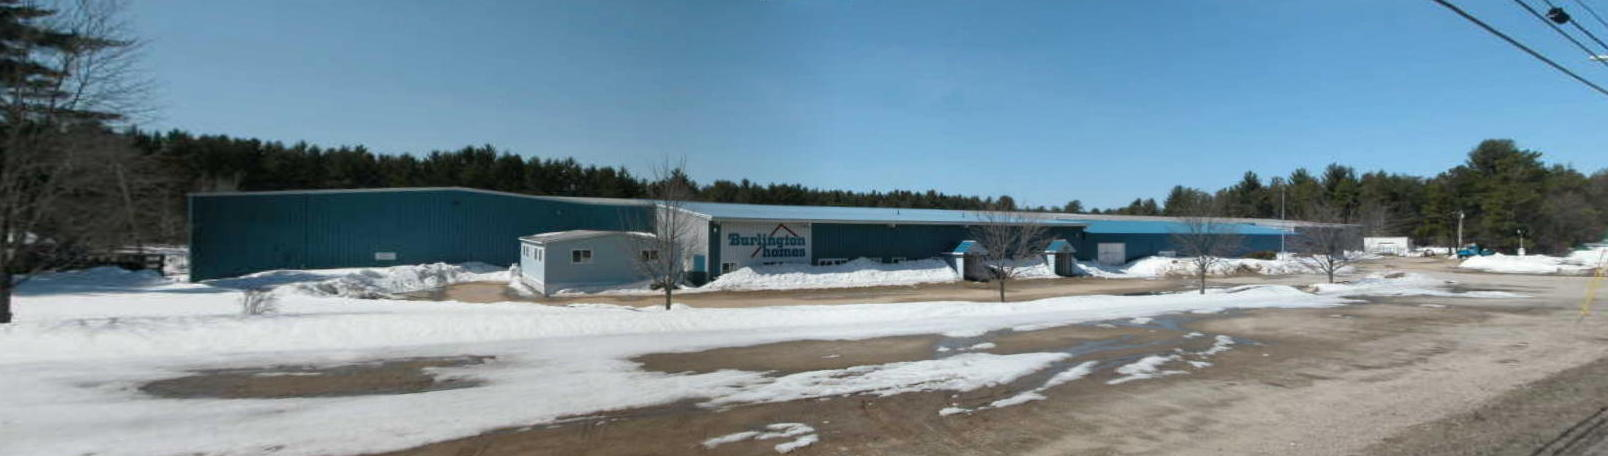 81,100+/- SF Manufacturing Facility - 13.5+/- Acres Auction